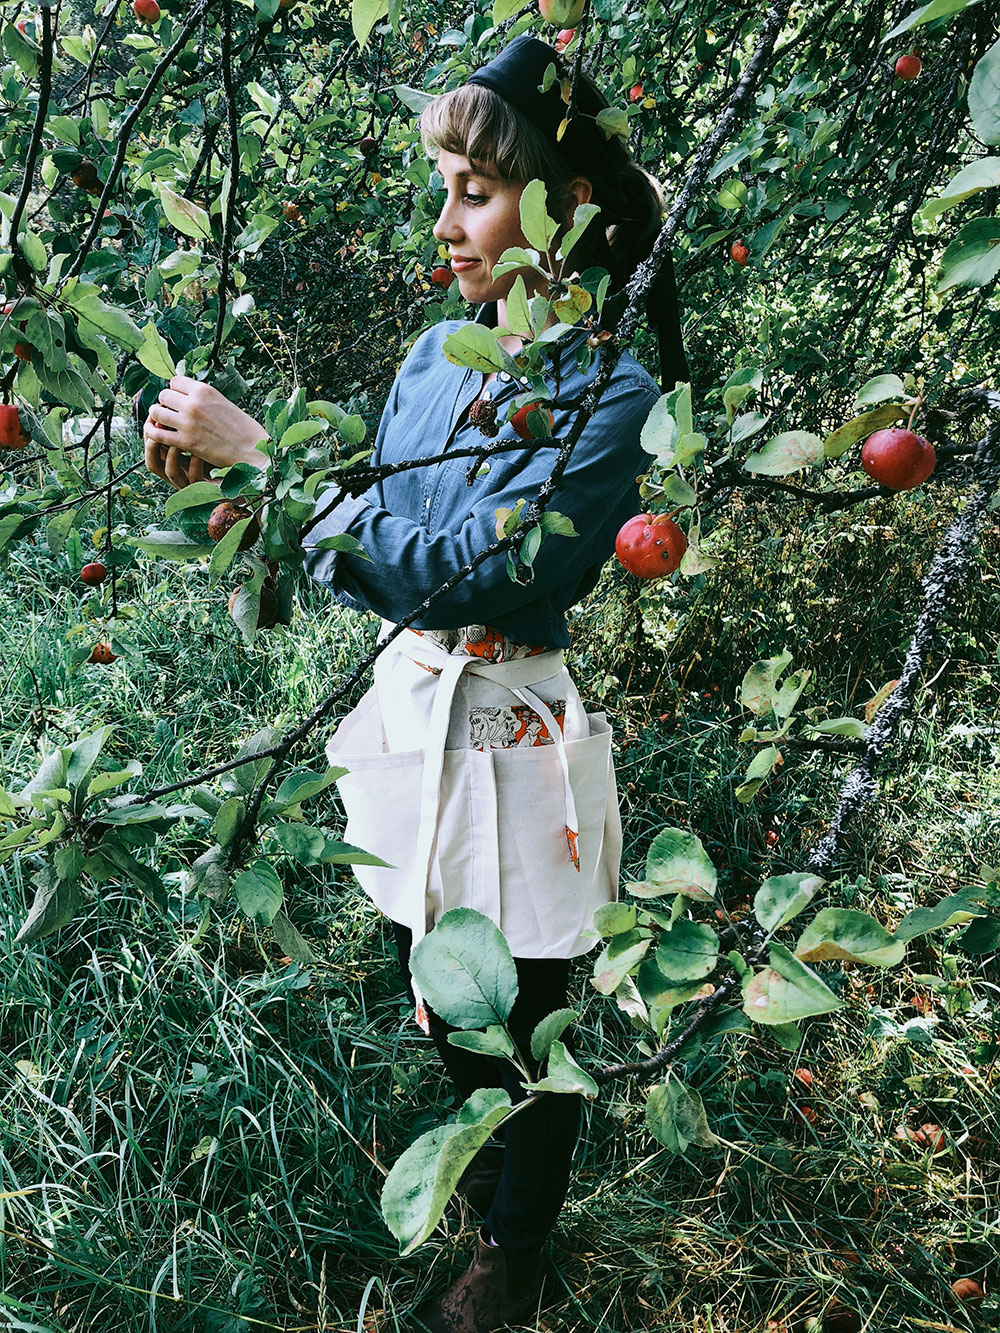 Standing in the apple orchard